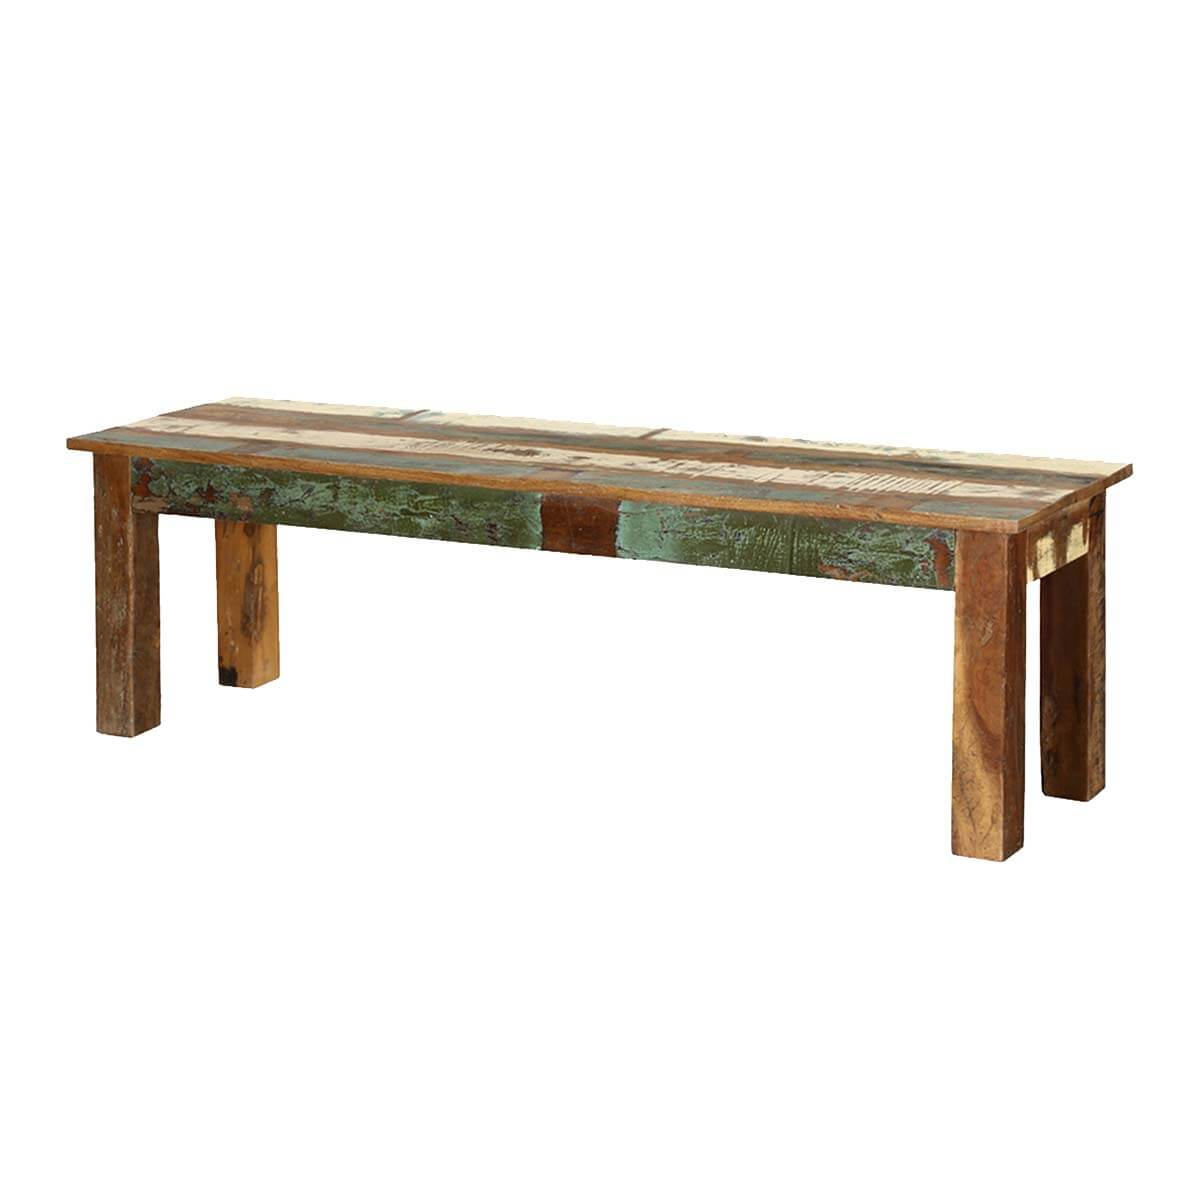 Rustic Rainbow Reclaimed Wood 58 Long Bench